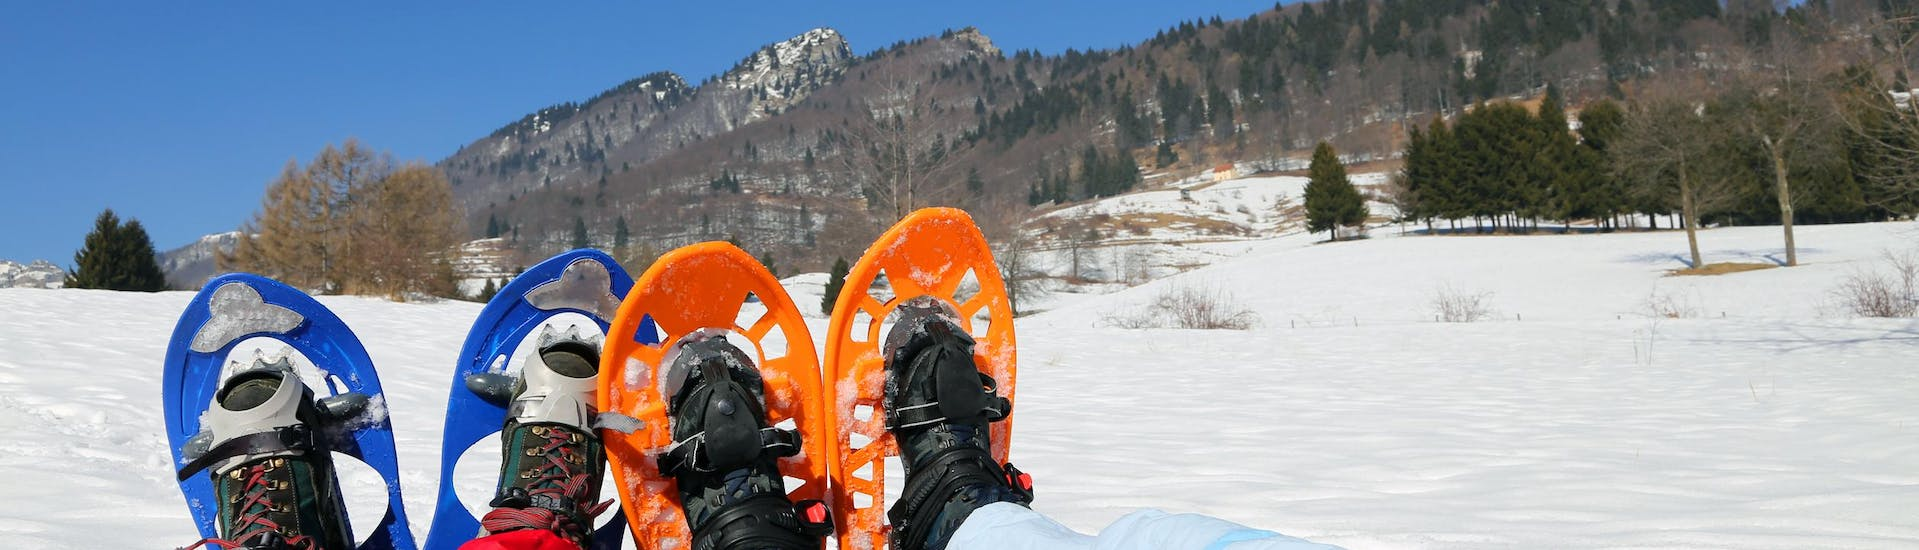 Private Snowshoeing Tour for All Ages & Levels with Adrenaline Ski School Verbier - Hero image